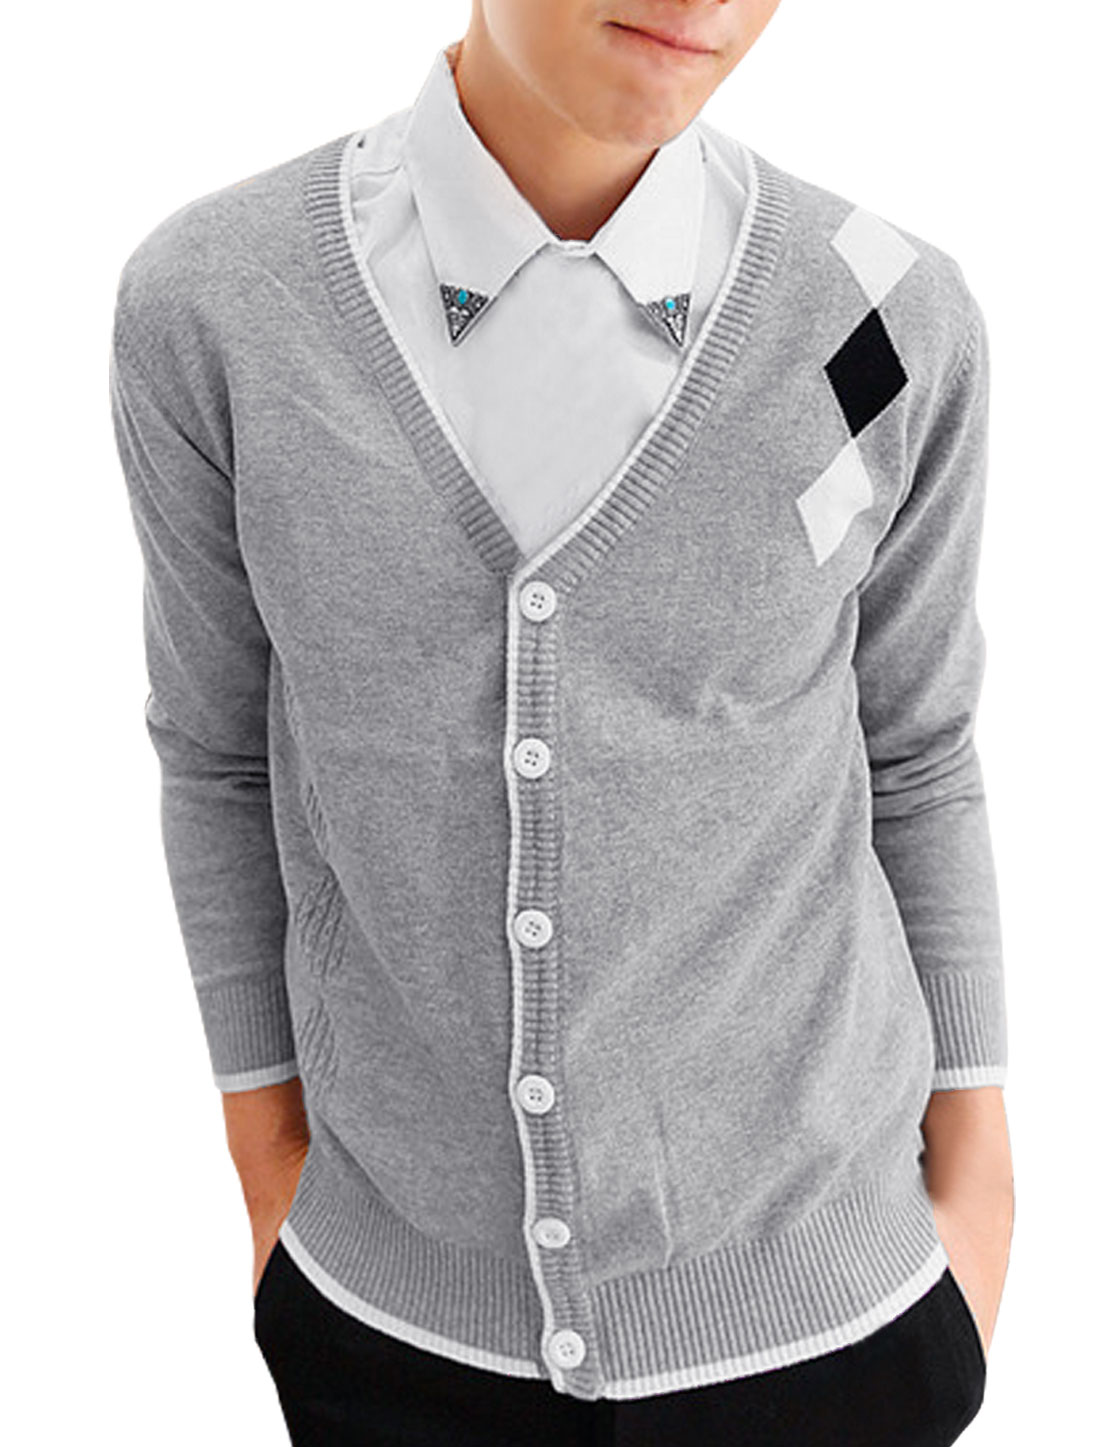 Men's Splice Color Single Breasted Light Gray Knitted Cardigan S